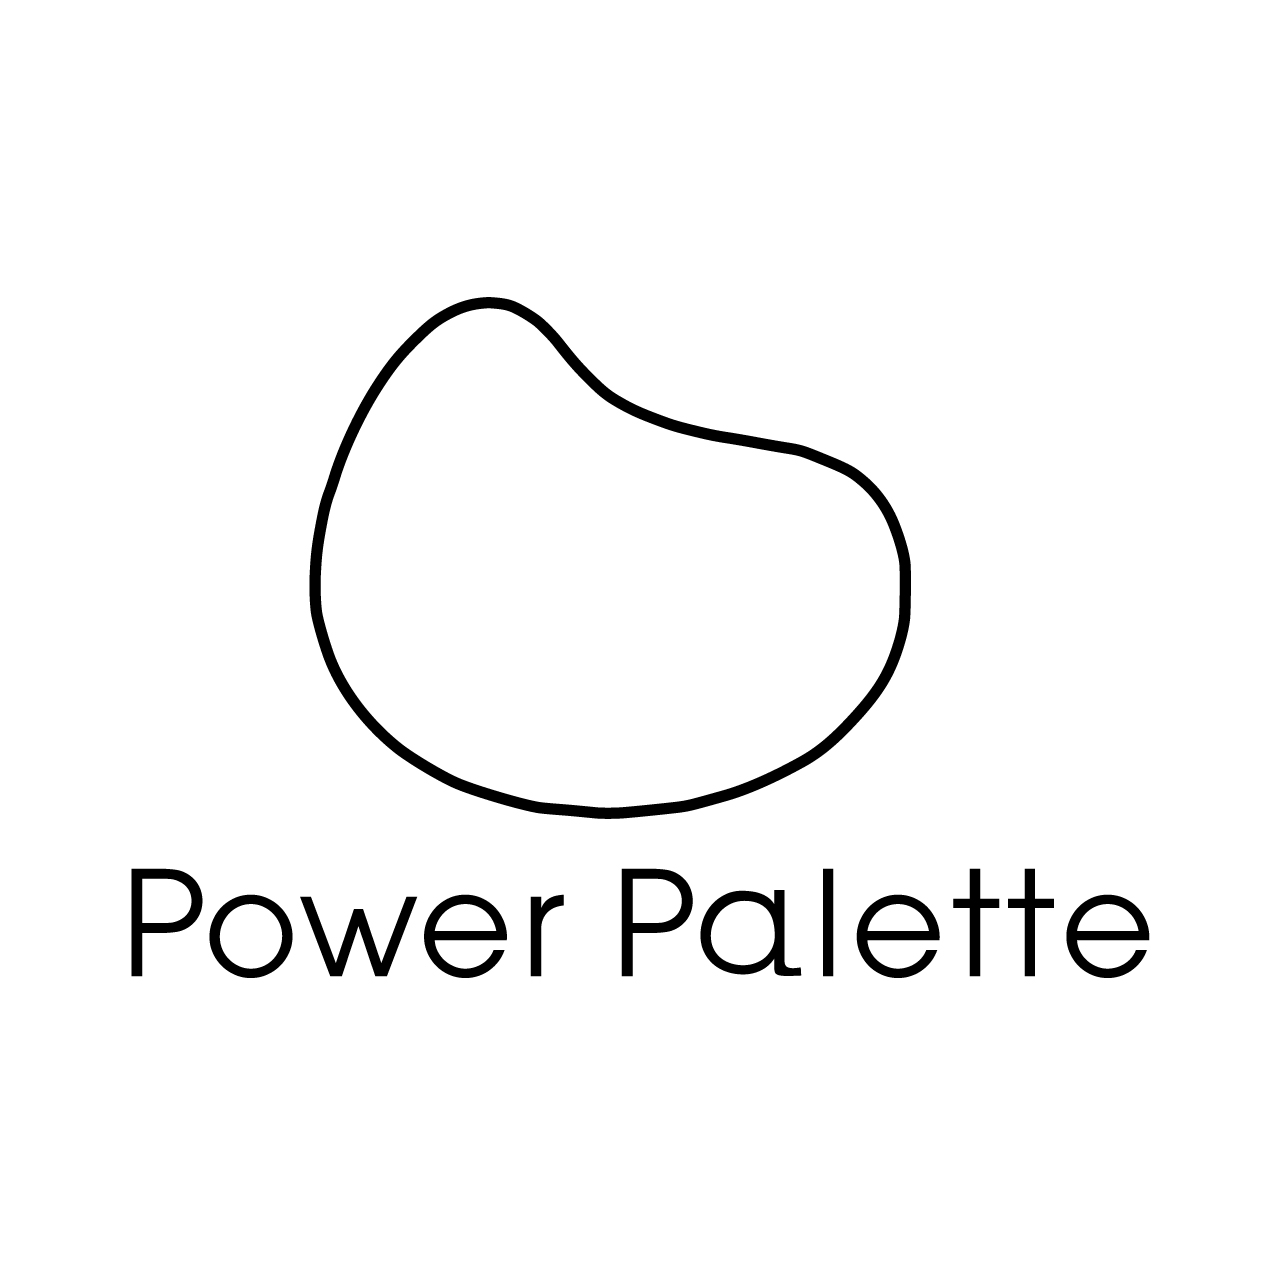 Power Palette